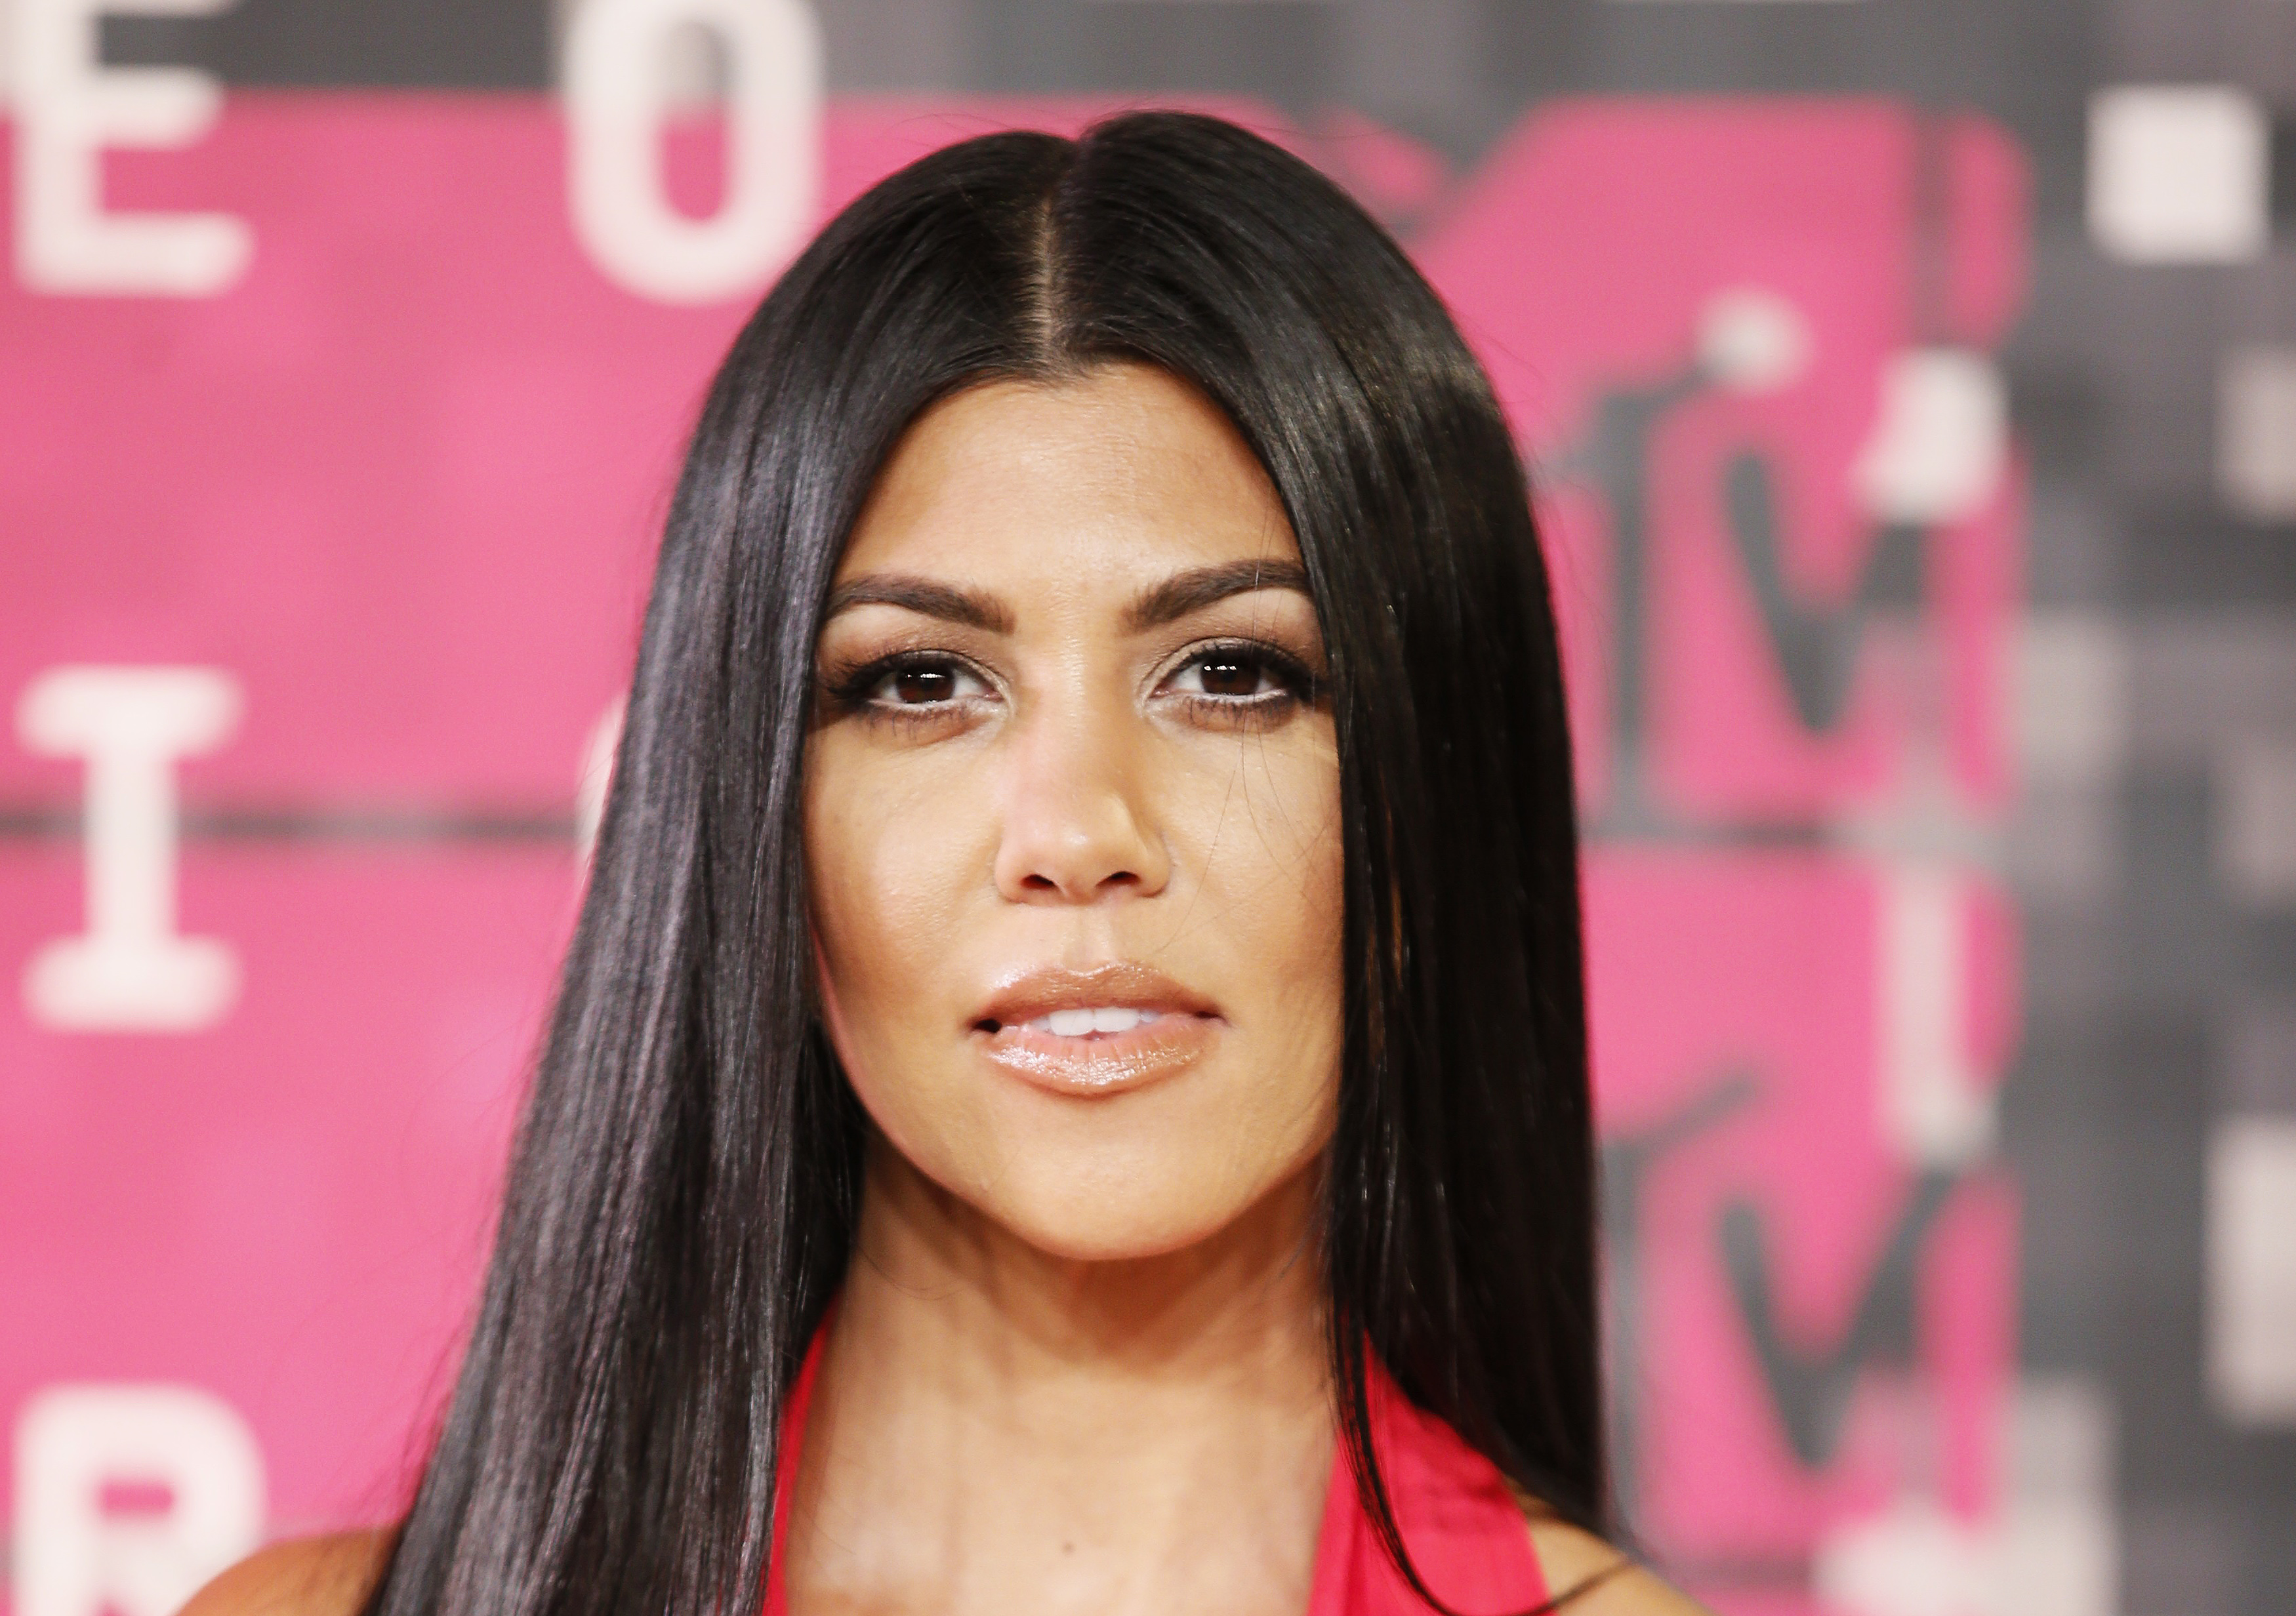 Are Kourtney Kardashian And Scott Disick Back Together? Former Couple Goes On Vacation In Mexico